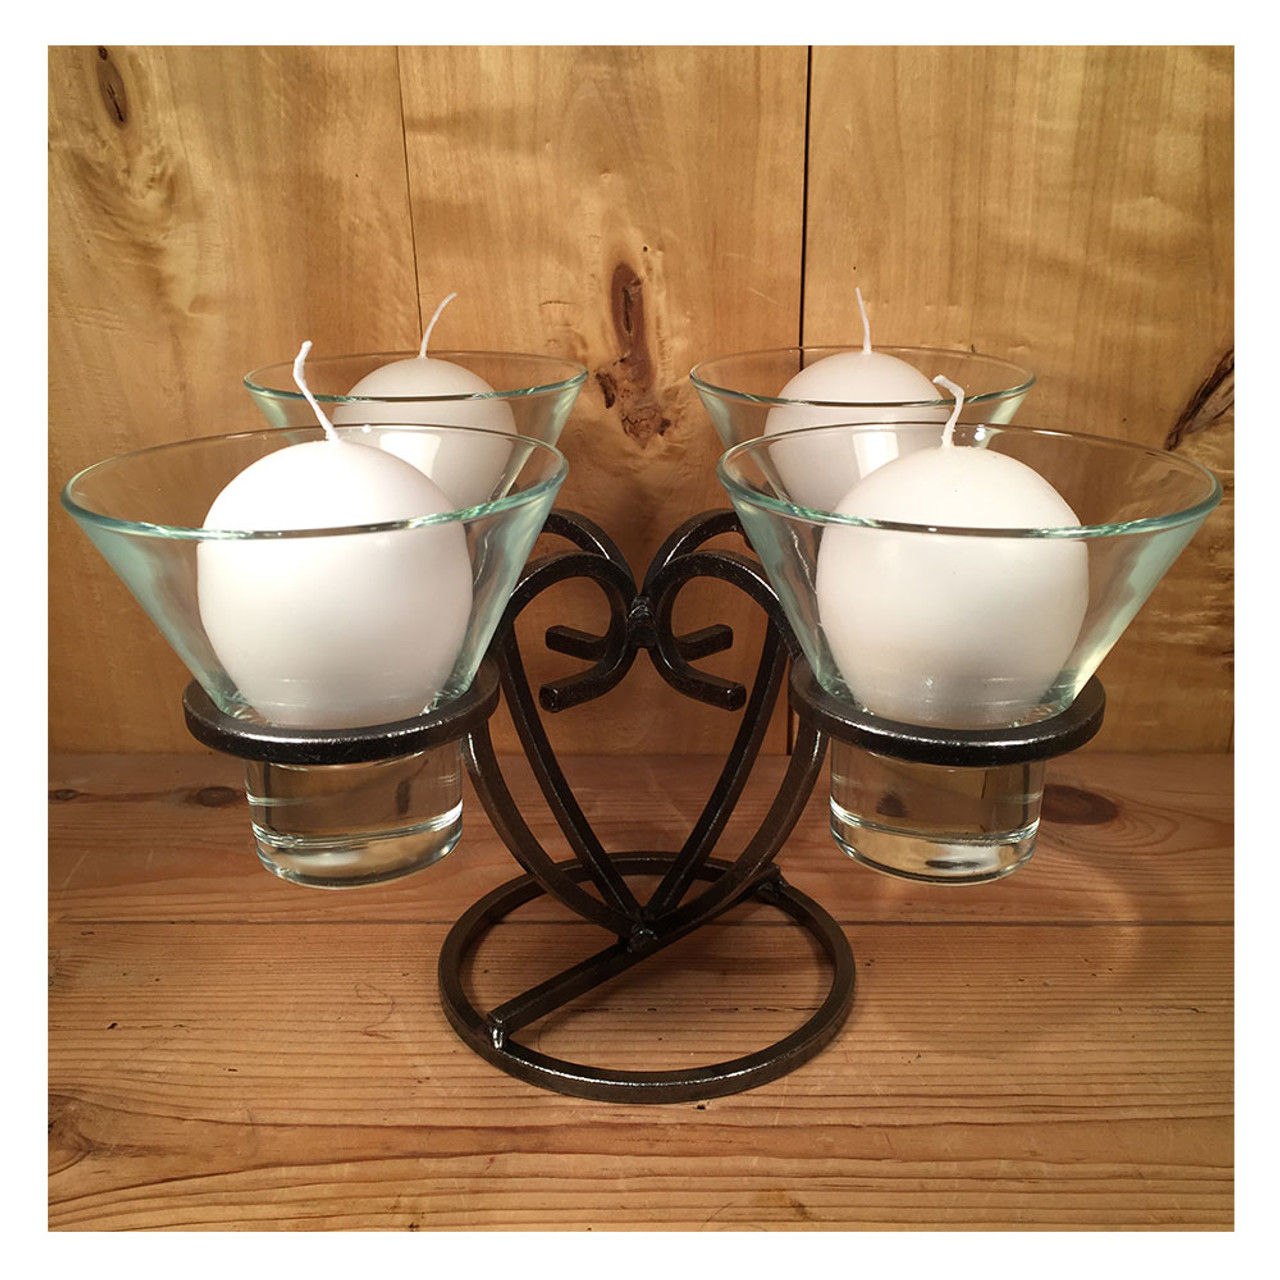 Danish Iron Candle Holder Advent Wreath W Glass Cups St Patricks Guild